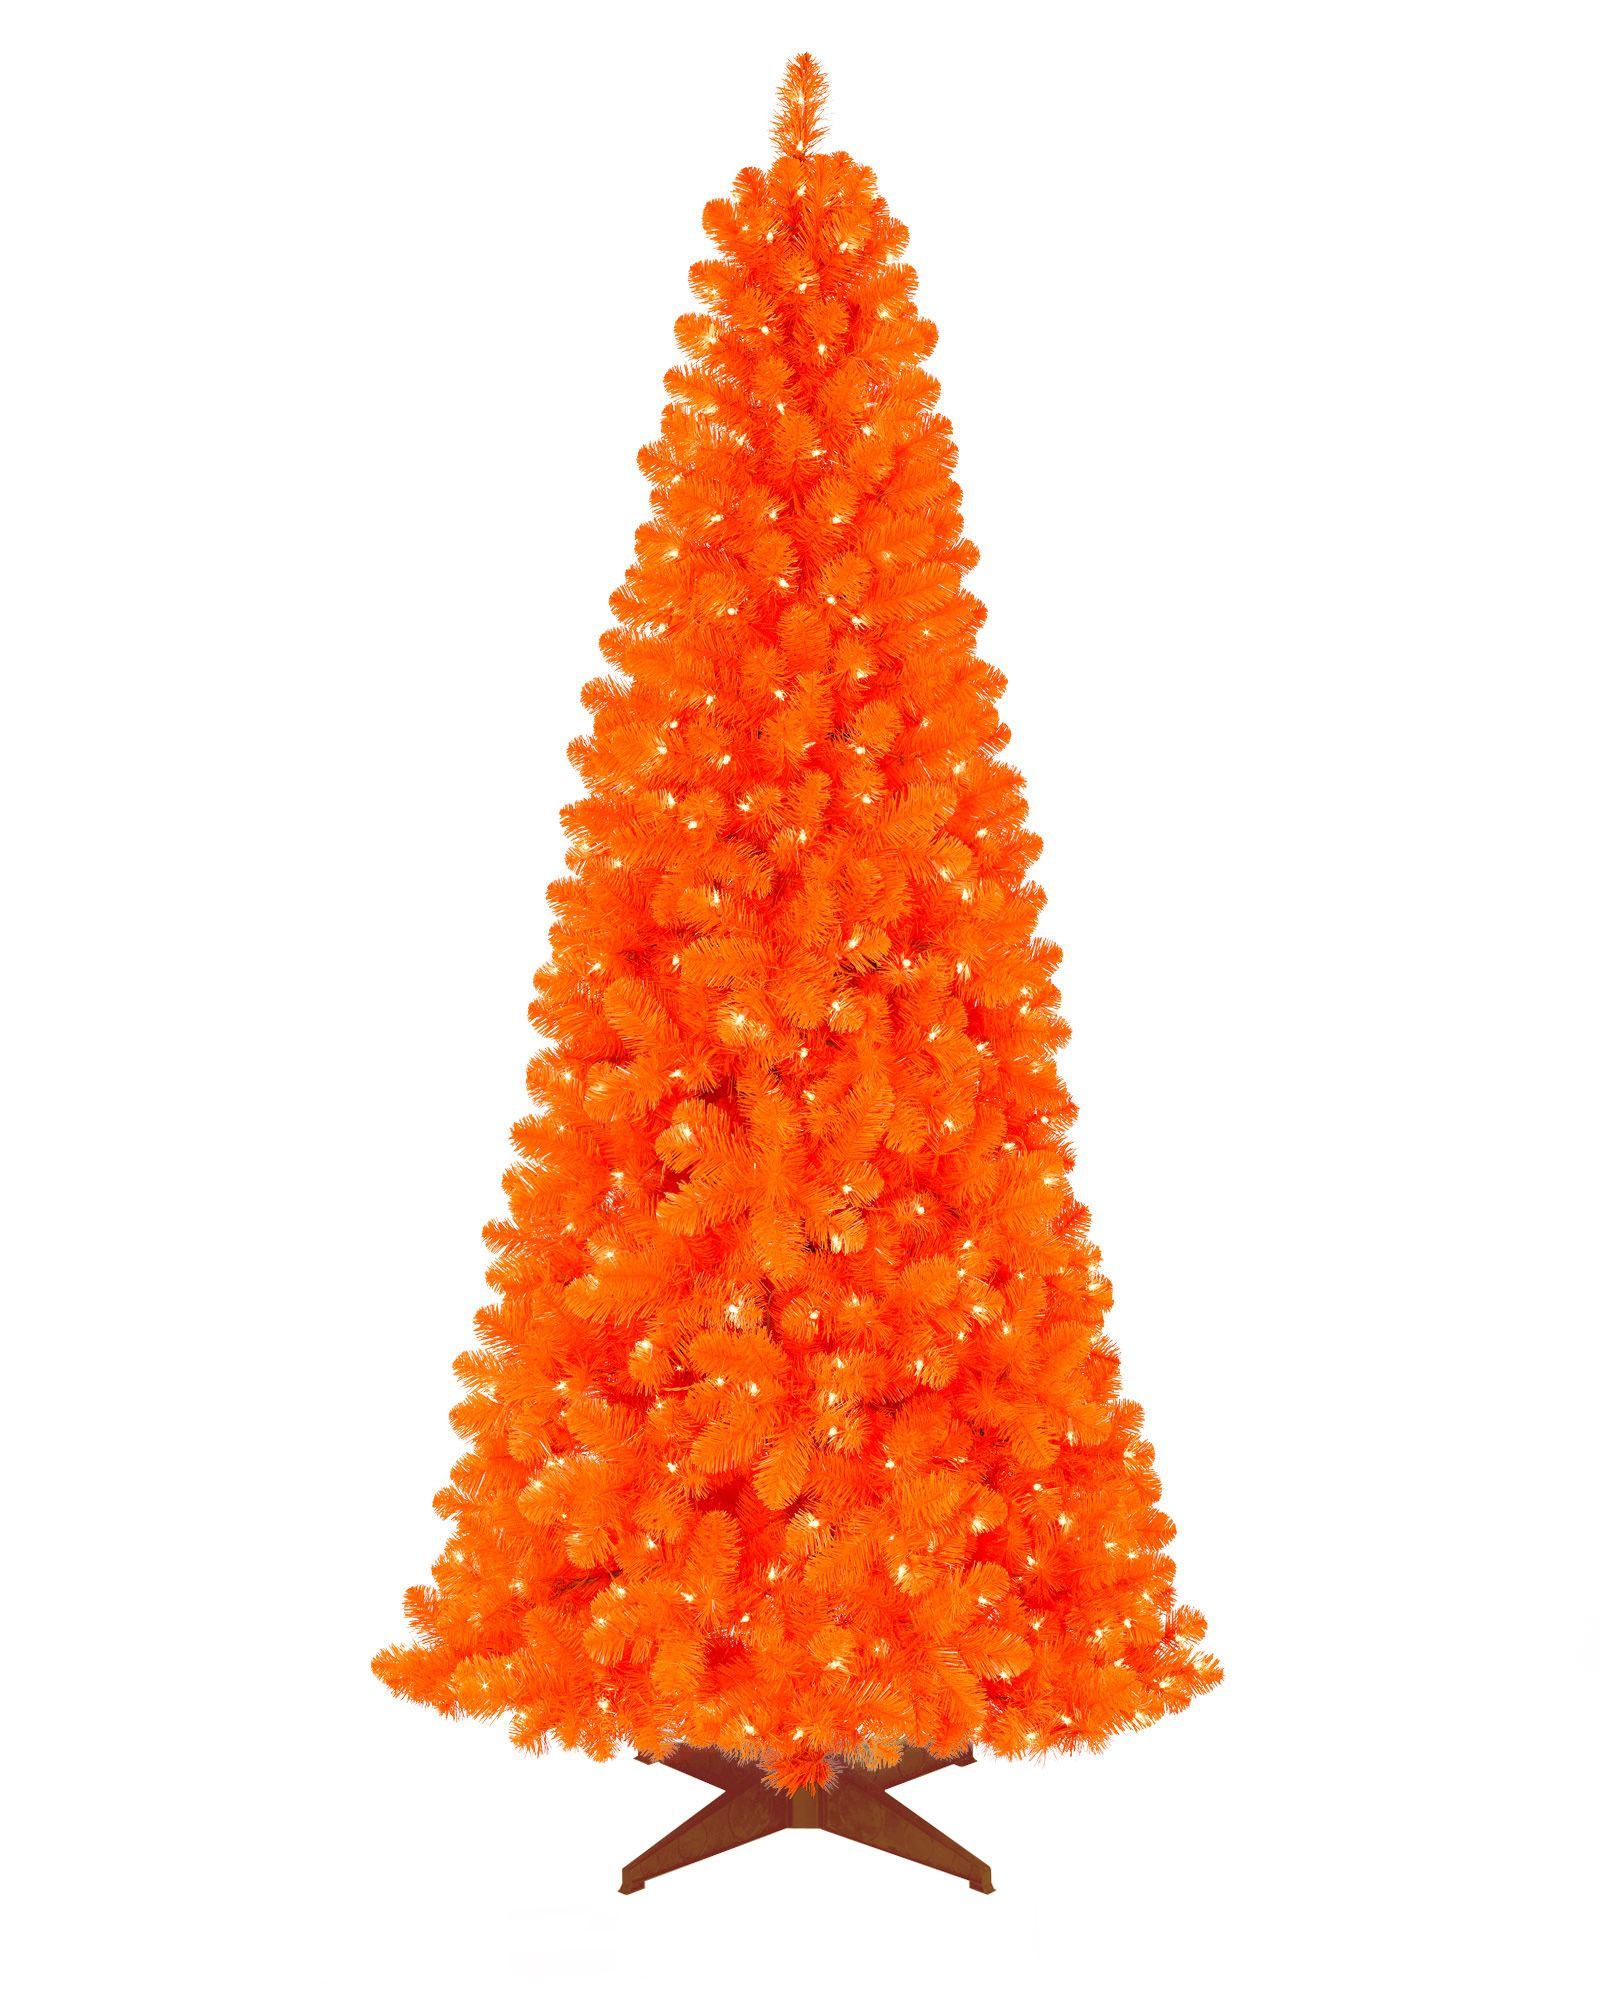 Treetopia Basics Orange Tree Christmas tree Christmas tree